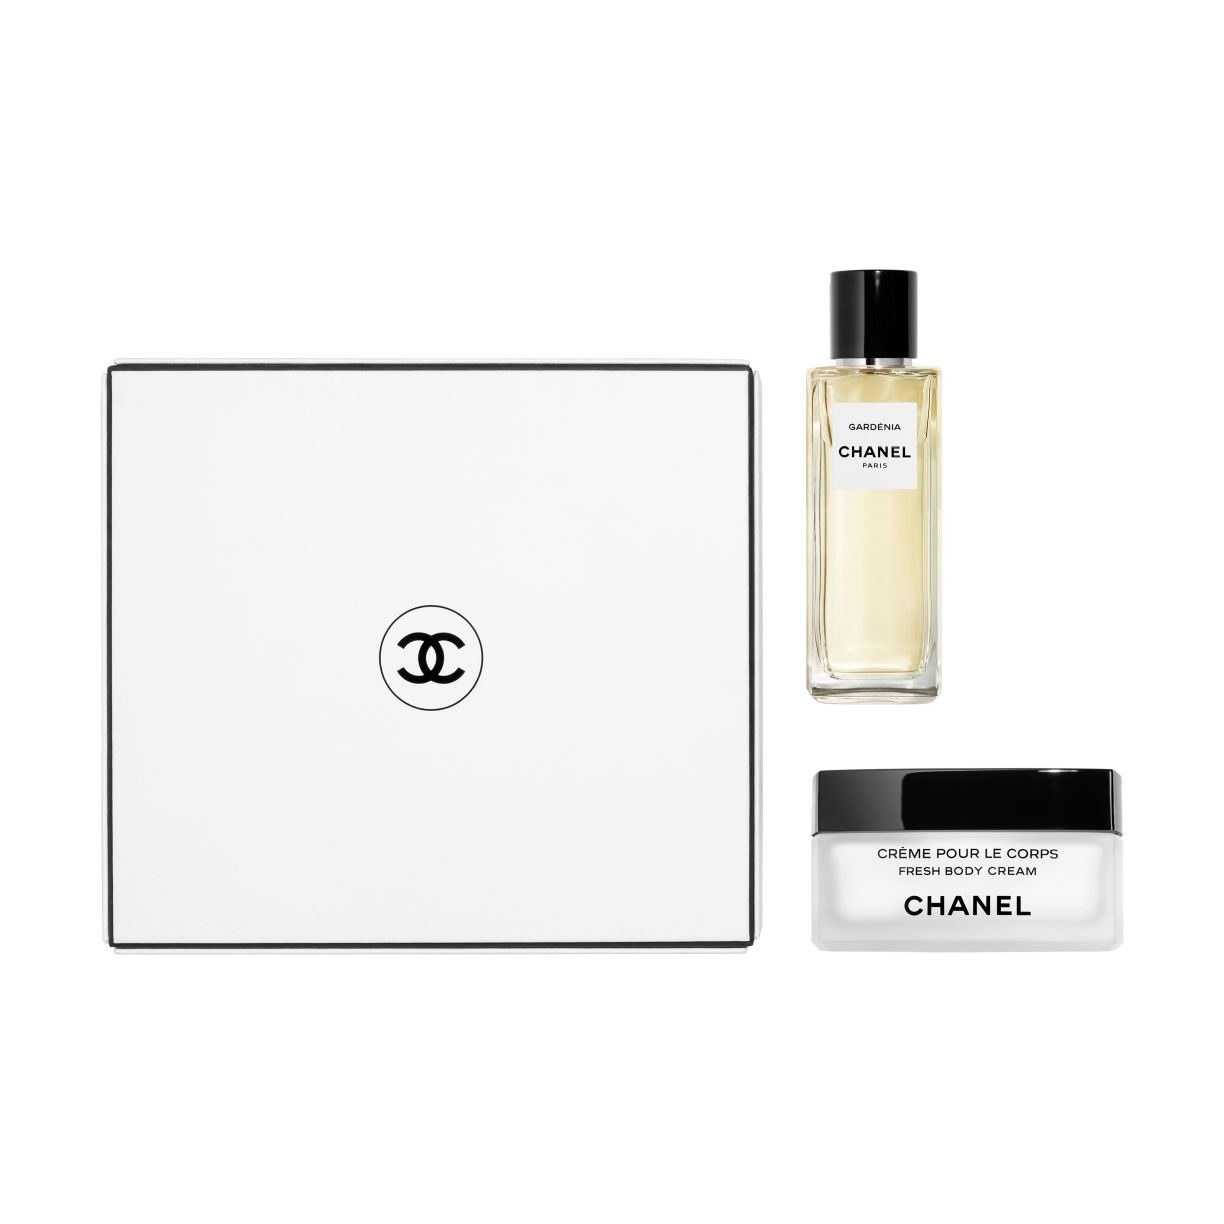 LES EXCLUSIFS DE CHANEL GARDÉNIA EAU DE PARFUM 75 ML AND FRESH BODY CREAM COFFRET